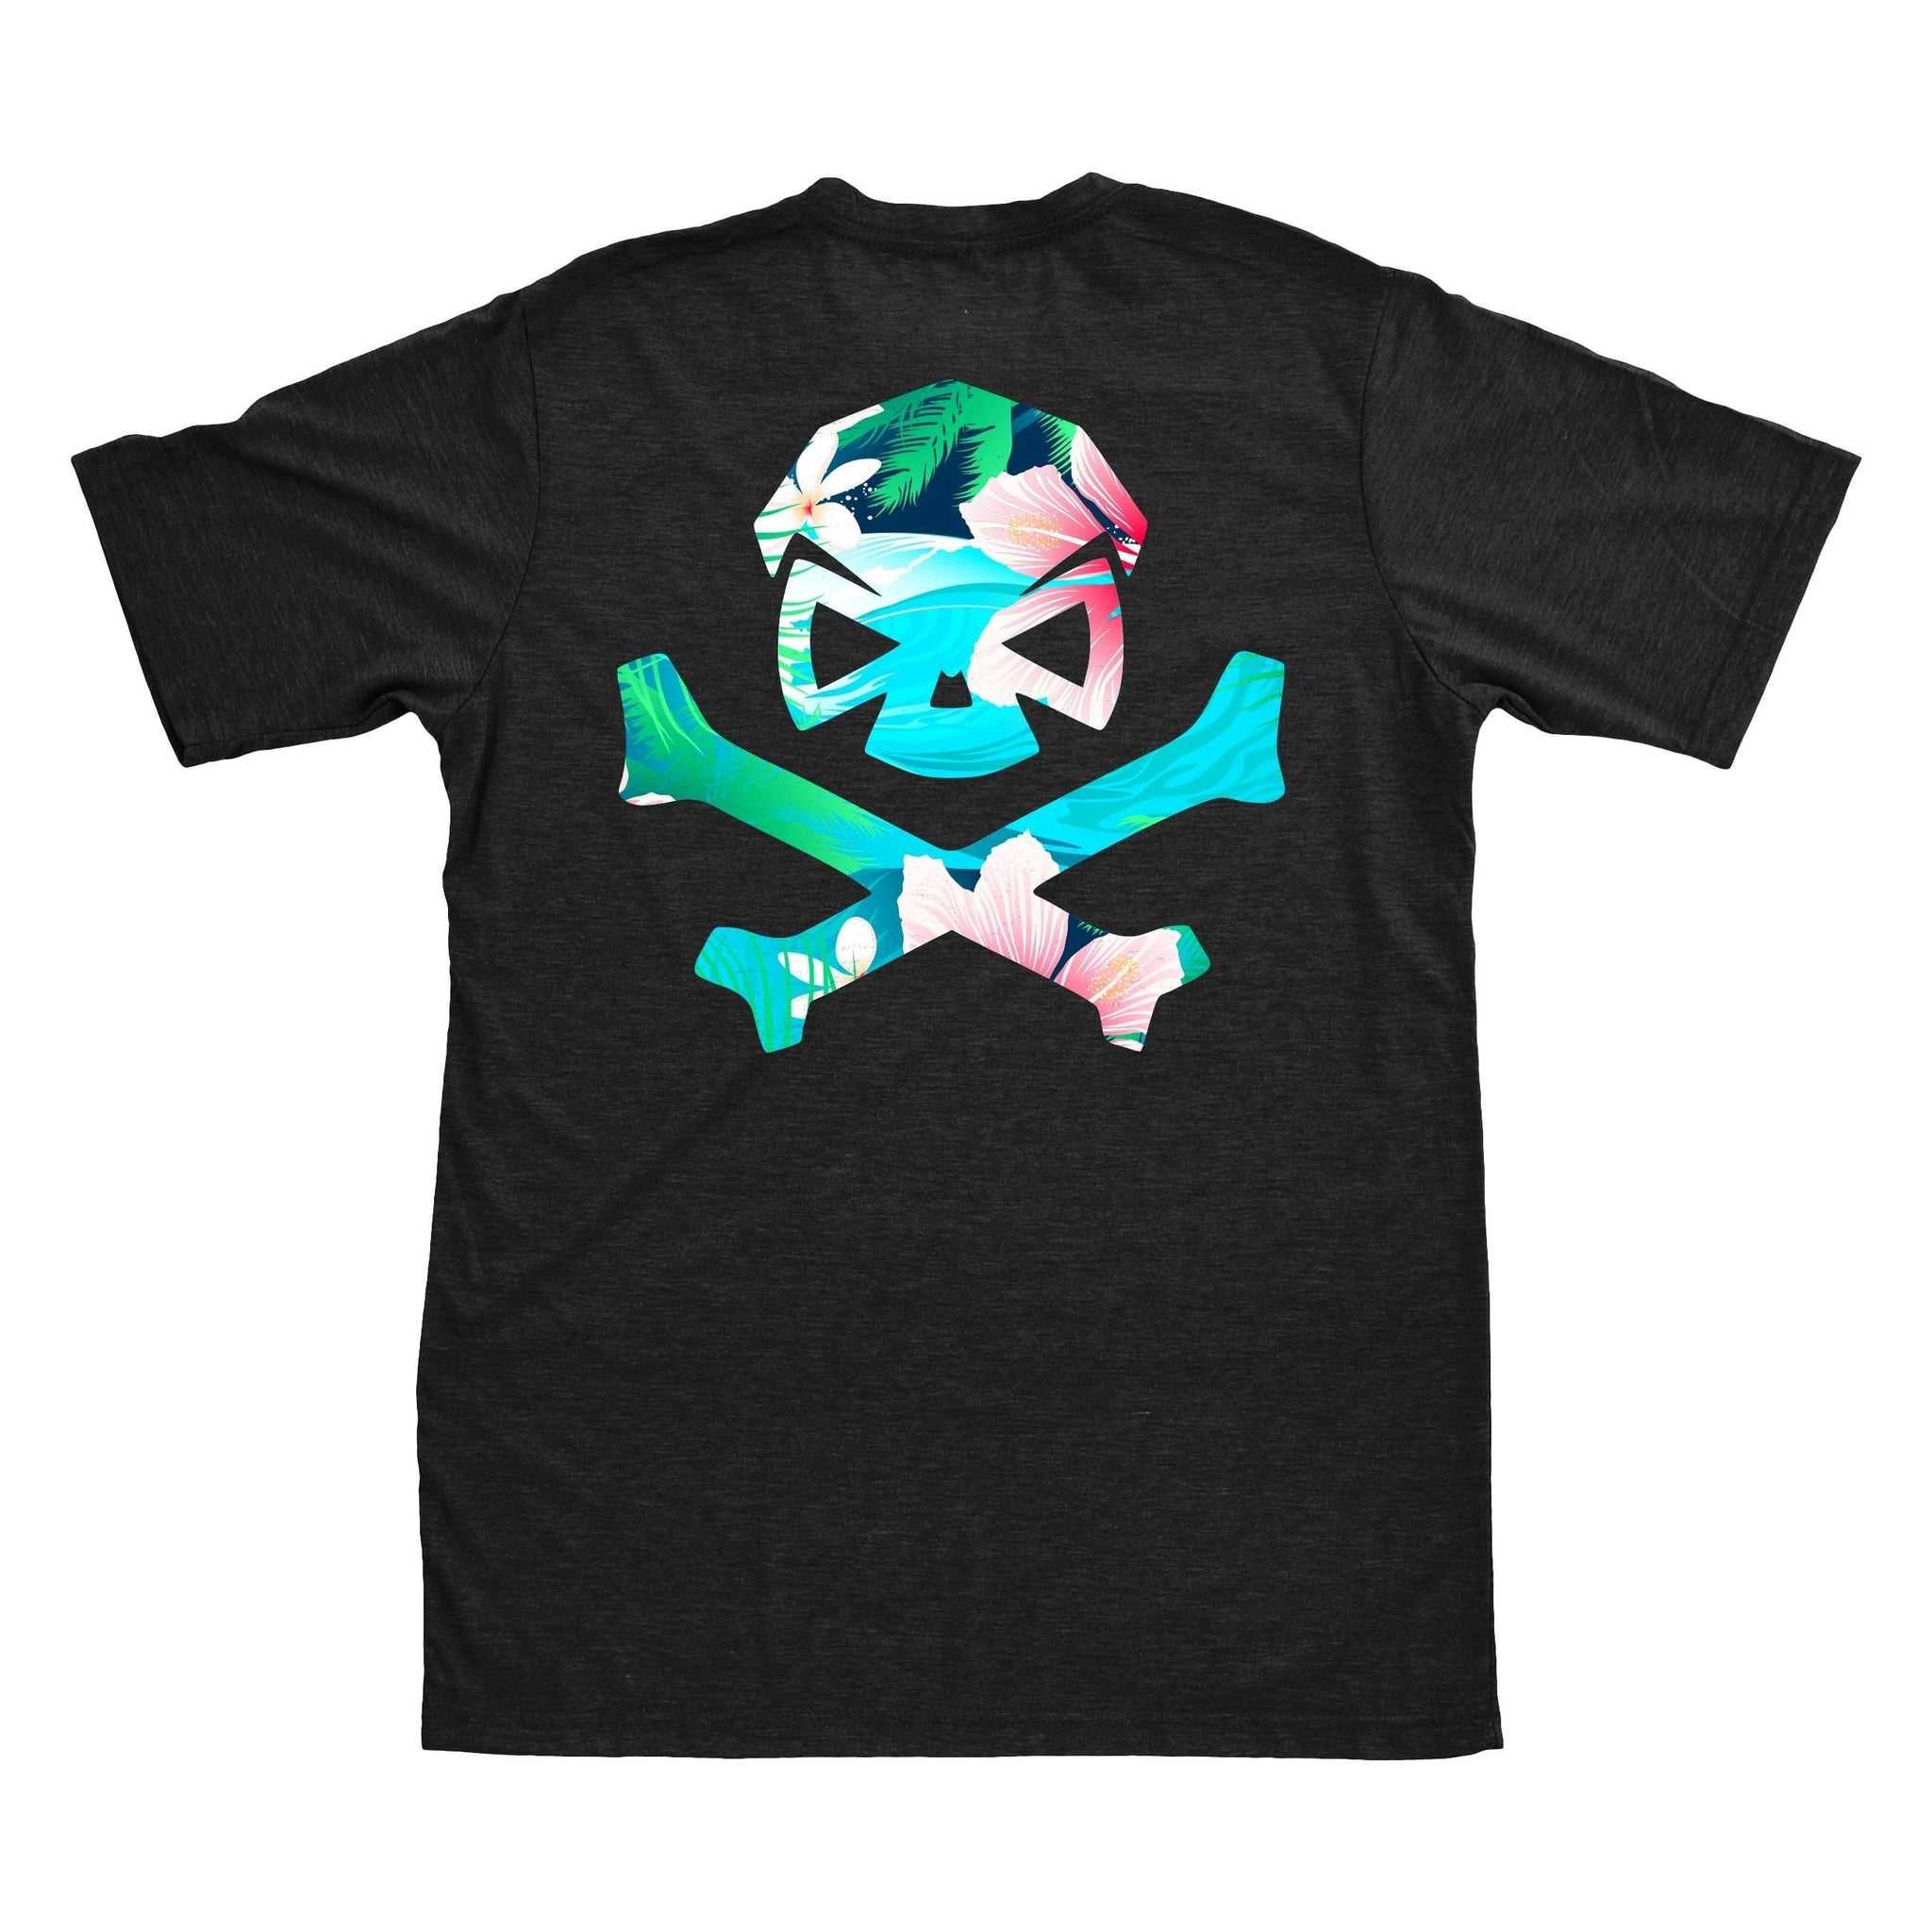 Hitter Five-0 - Black/Aqua - T-Shirts - Pipe Hitters Union